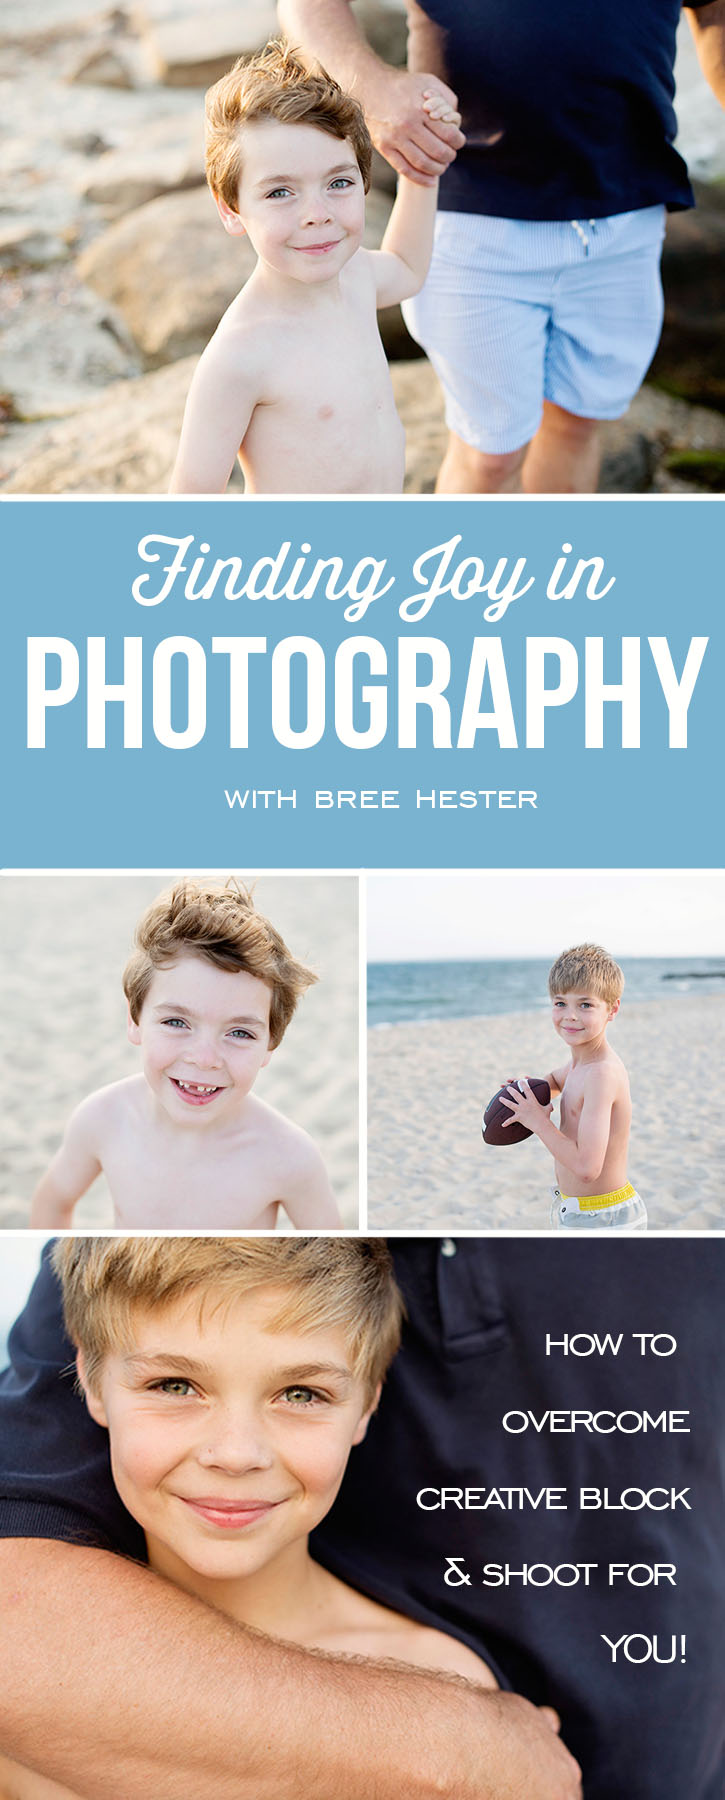 Finding Joy in Photography | How to overcome creative block and shoot for YOU!